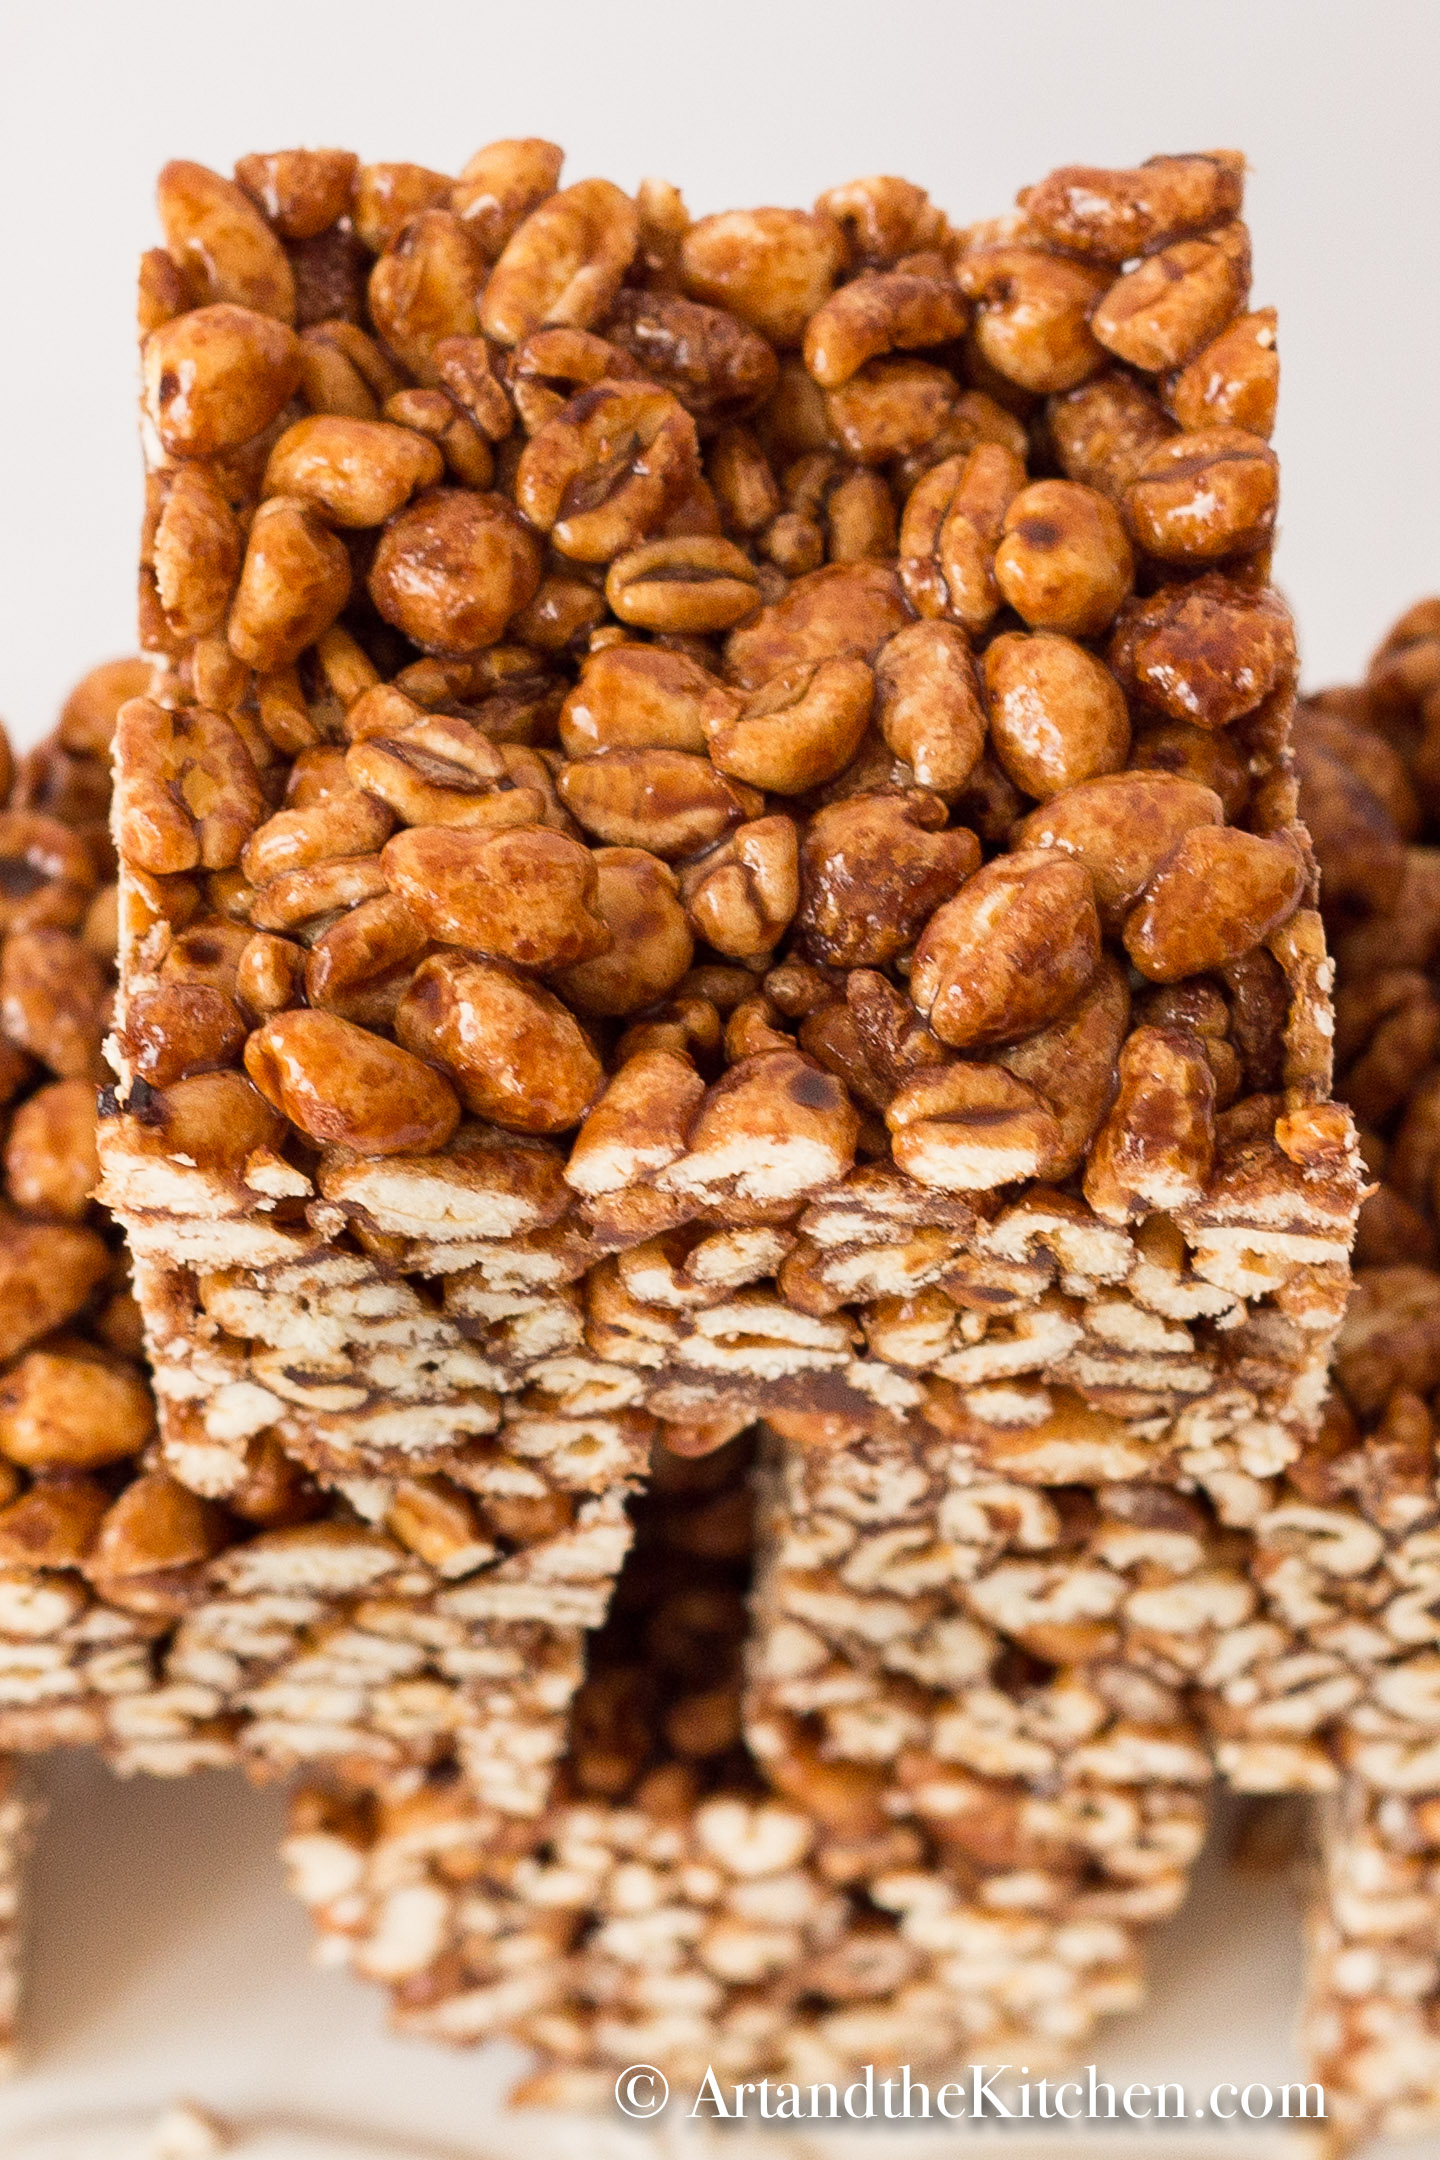 Puffed Wheat Squares are an easy to make treat. A great no bake square that is chewy and gooey. via @artandthekitch